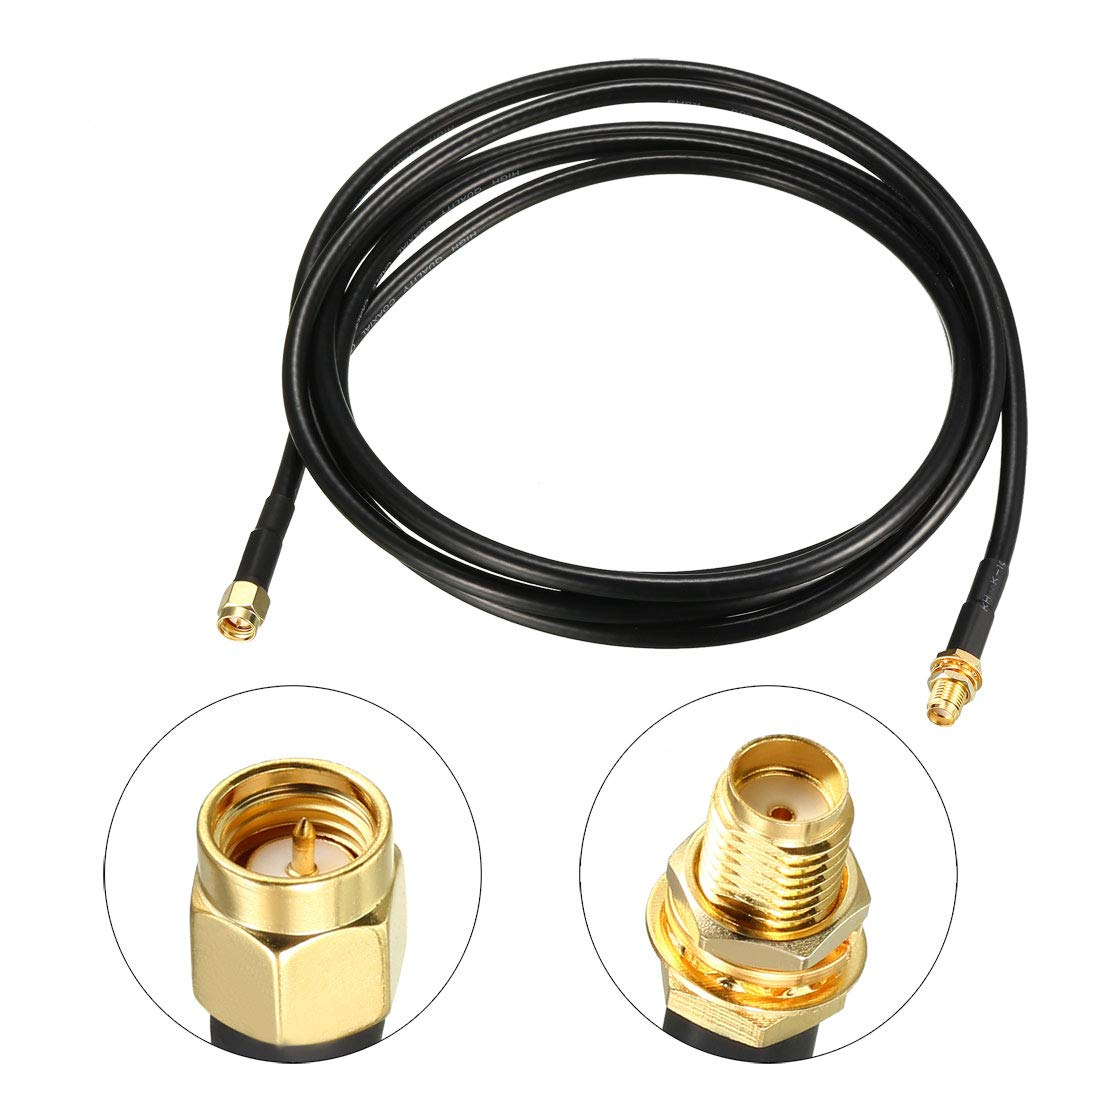 uxcell Antenna Extension Cable SMA Male to SMA Male Coaxial Cable RG58 50 Ohm 1 ft